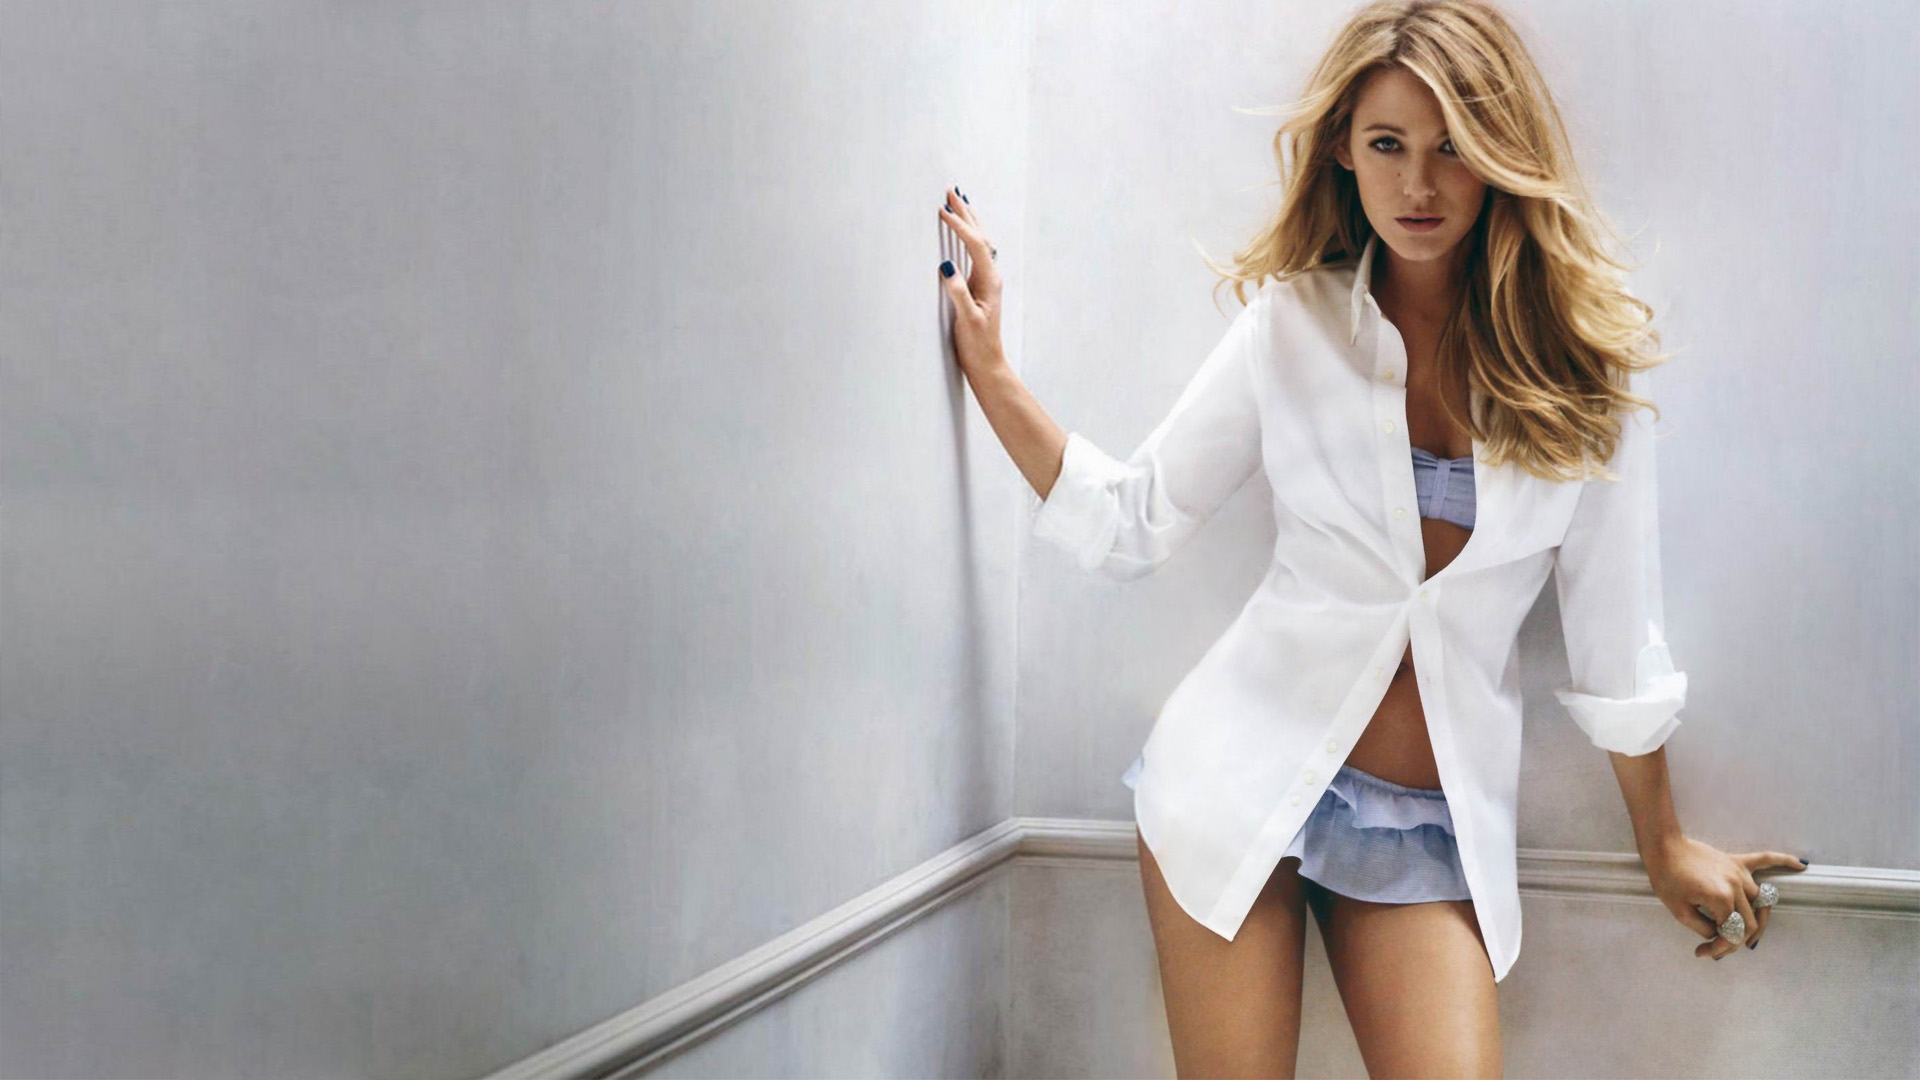 1920x1080 - Blake Lively Wallpapers 7